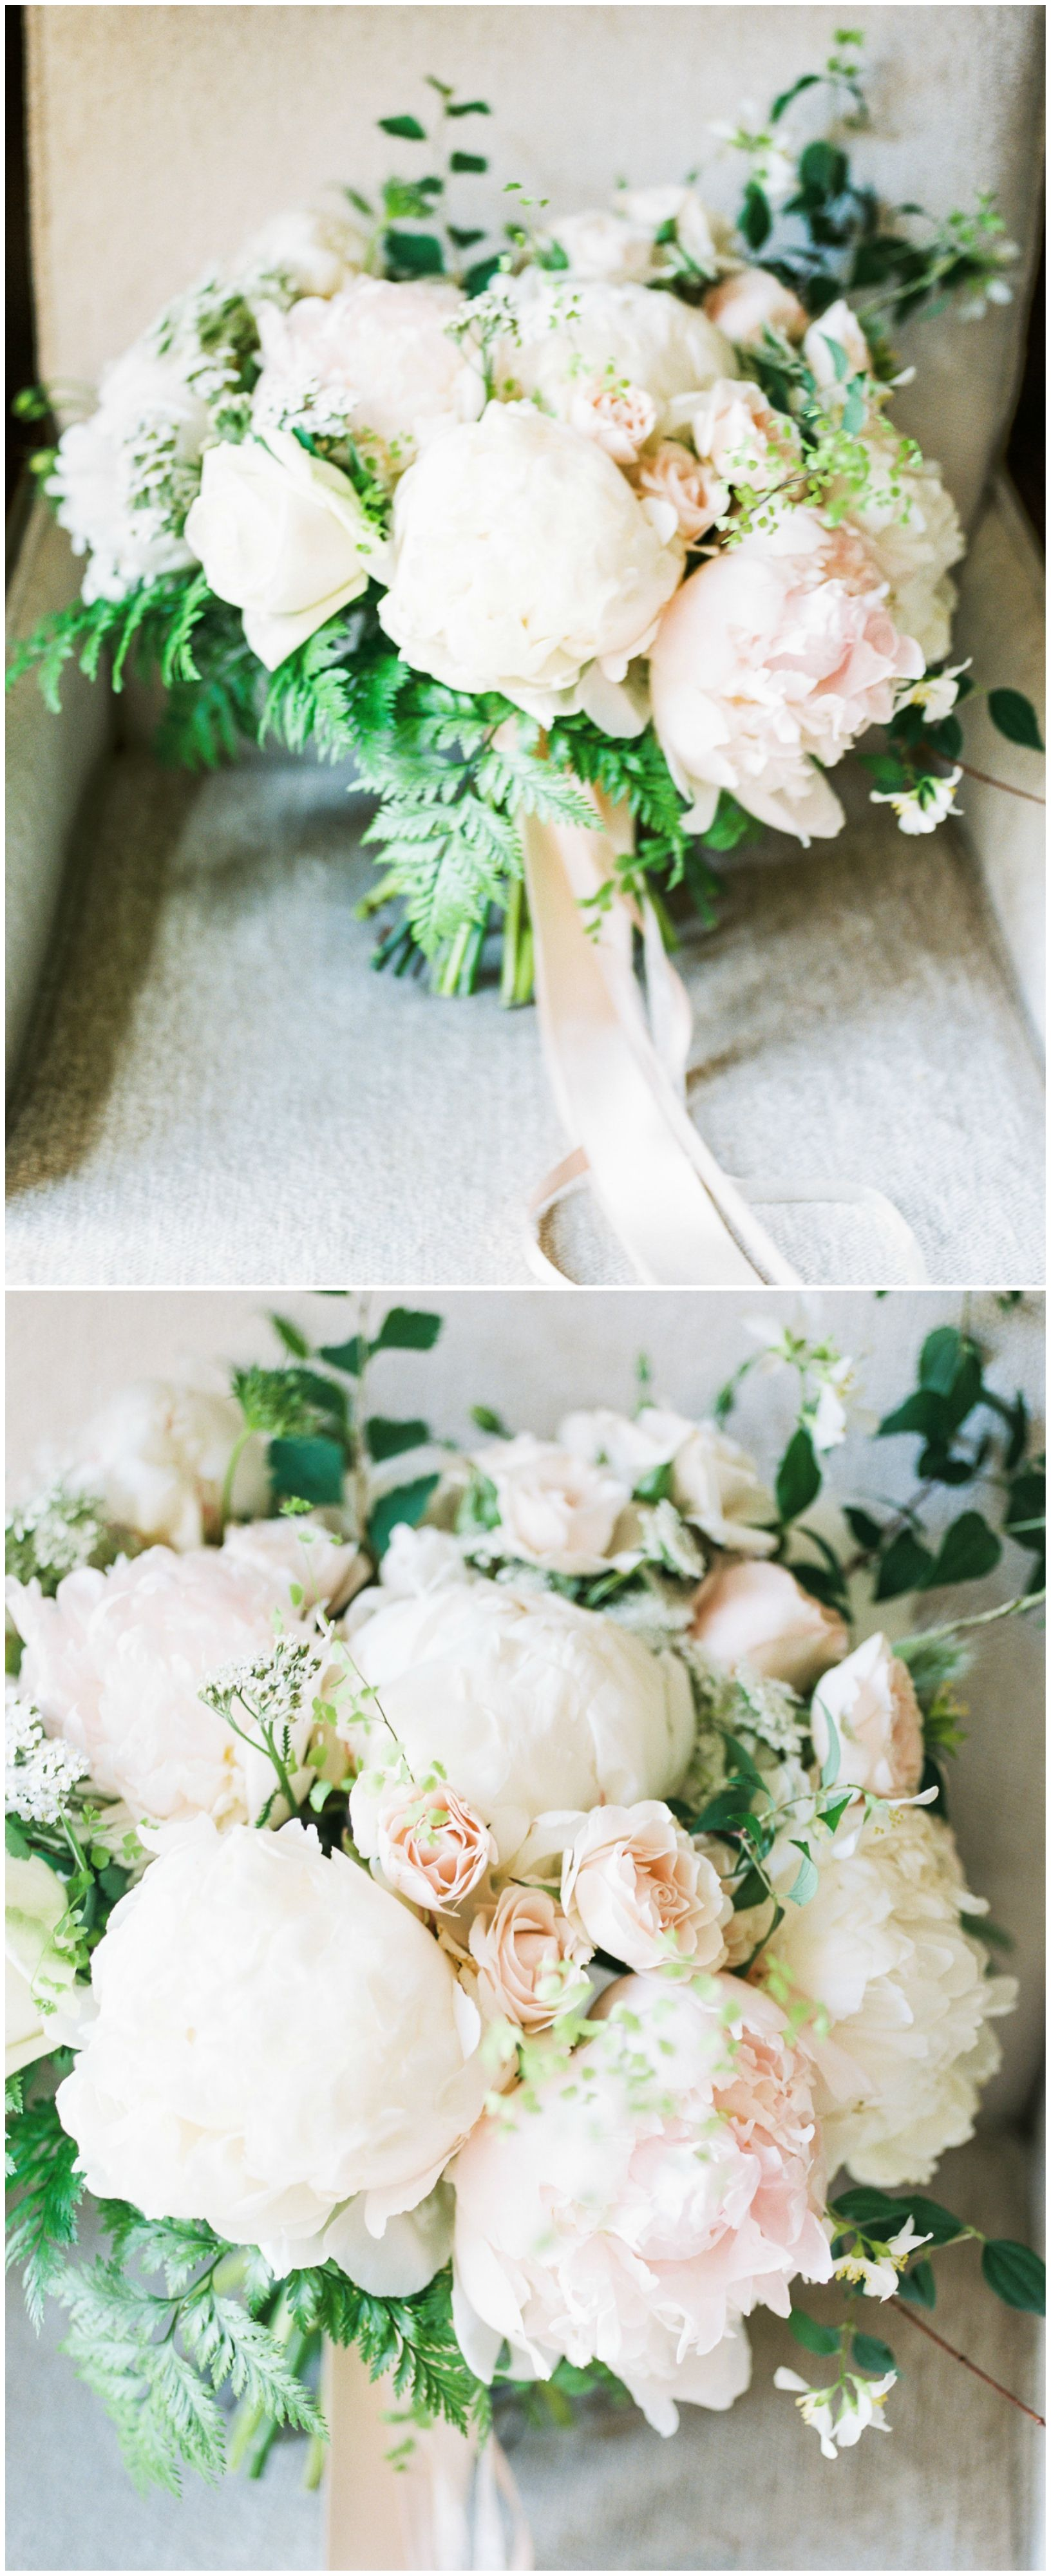 The Smarter Way to Wed | Peonies bouquet, White peonies and Bridal ...